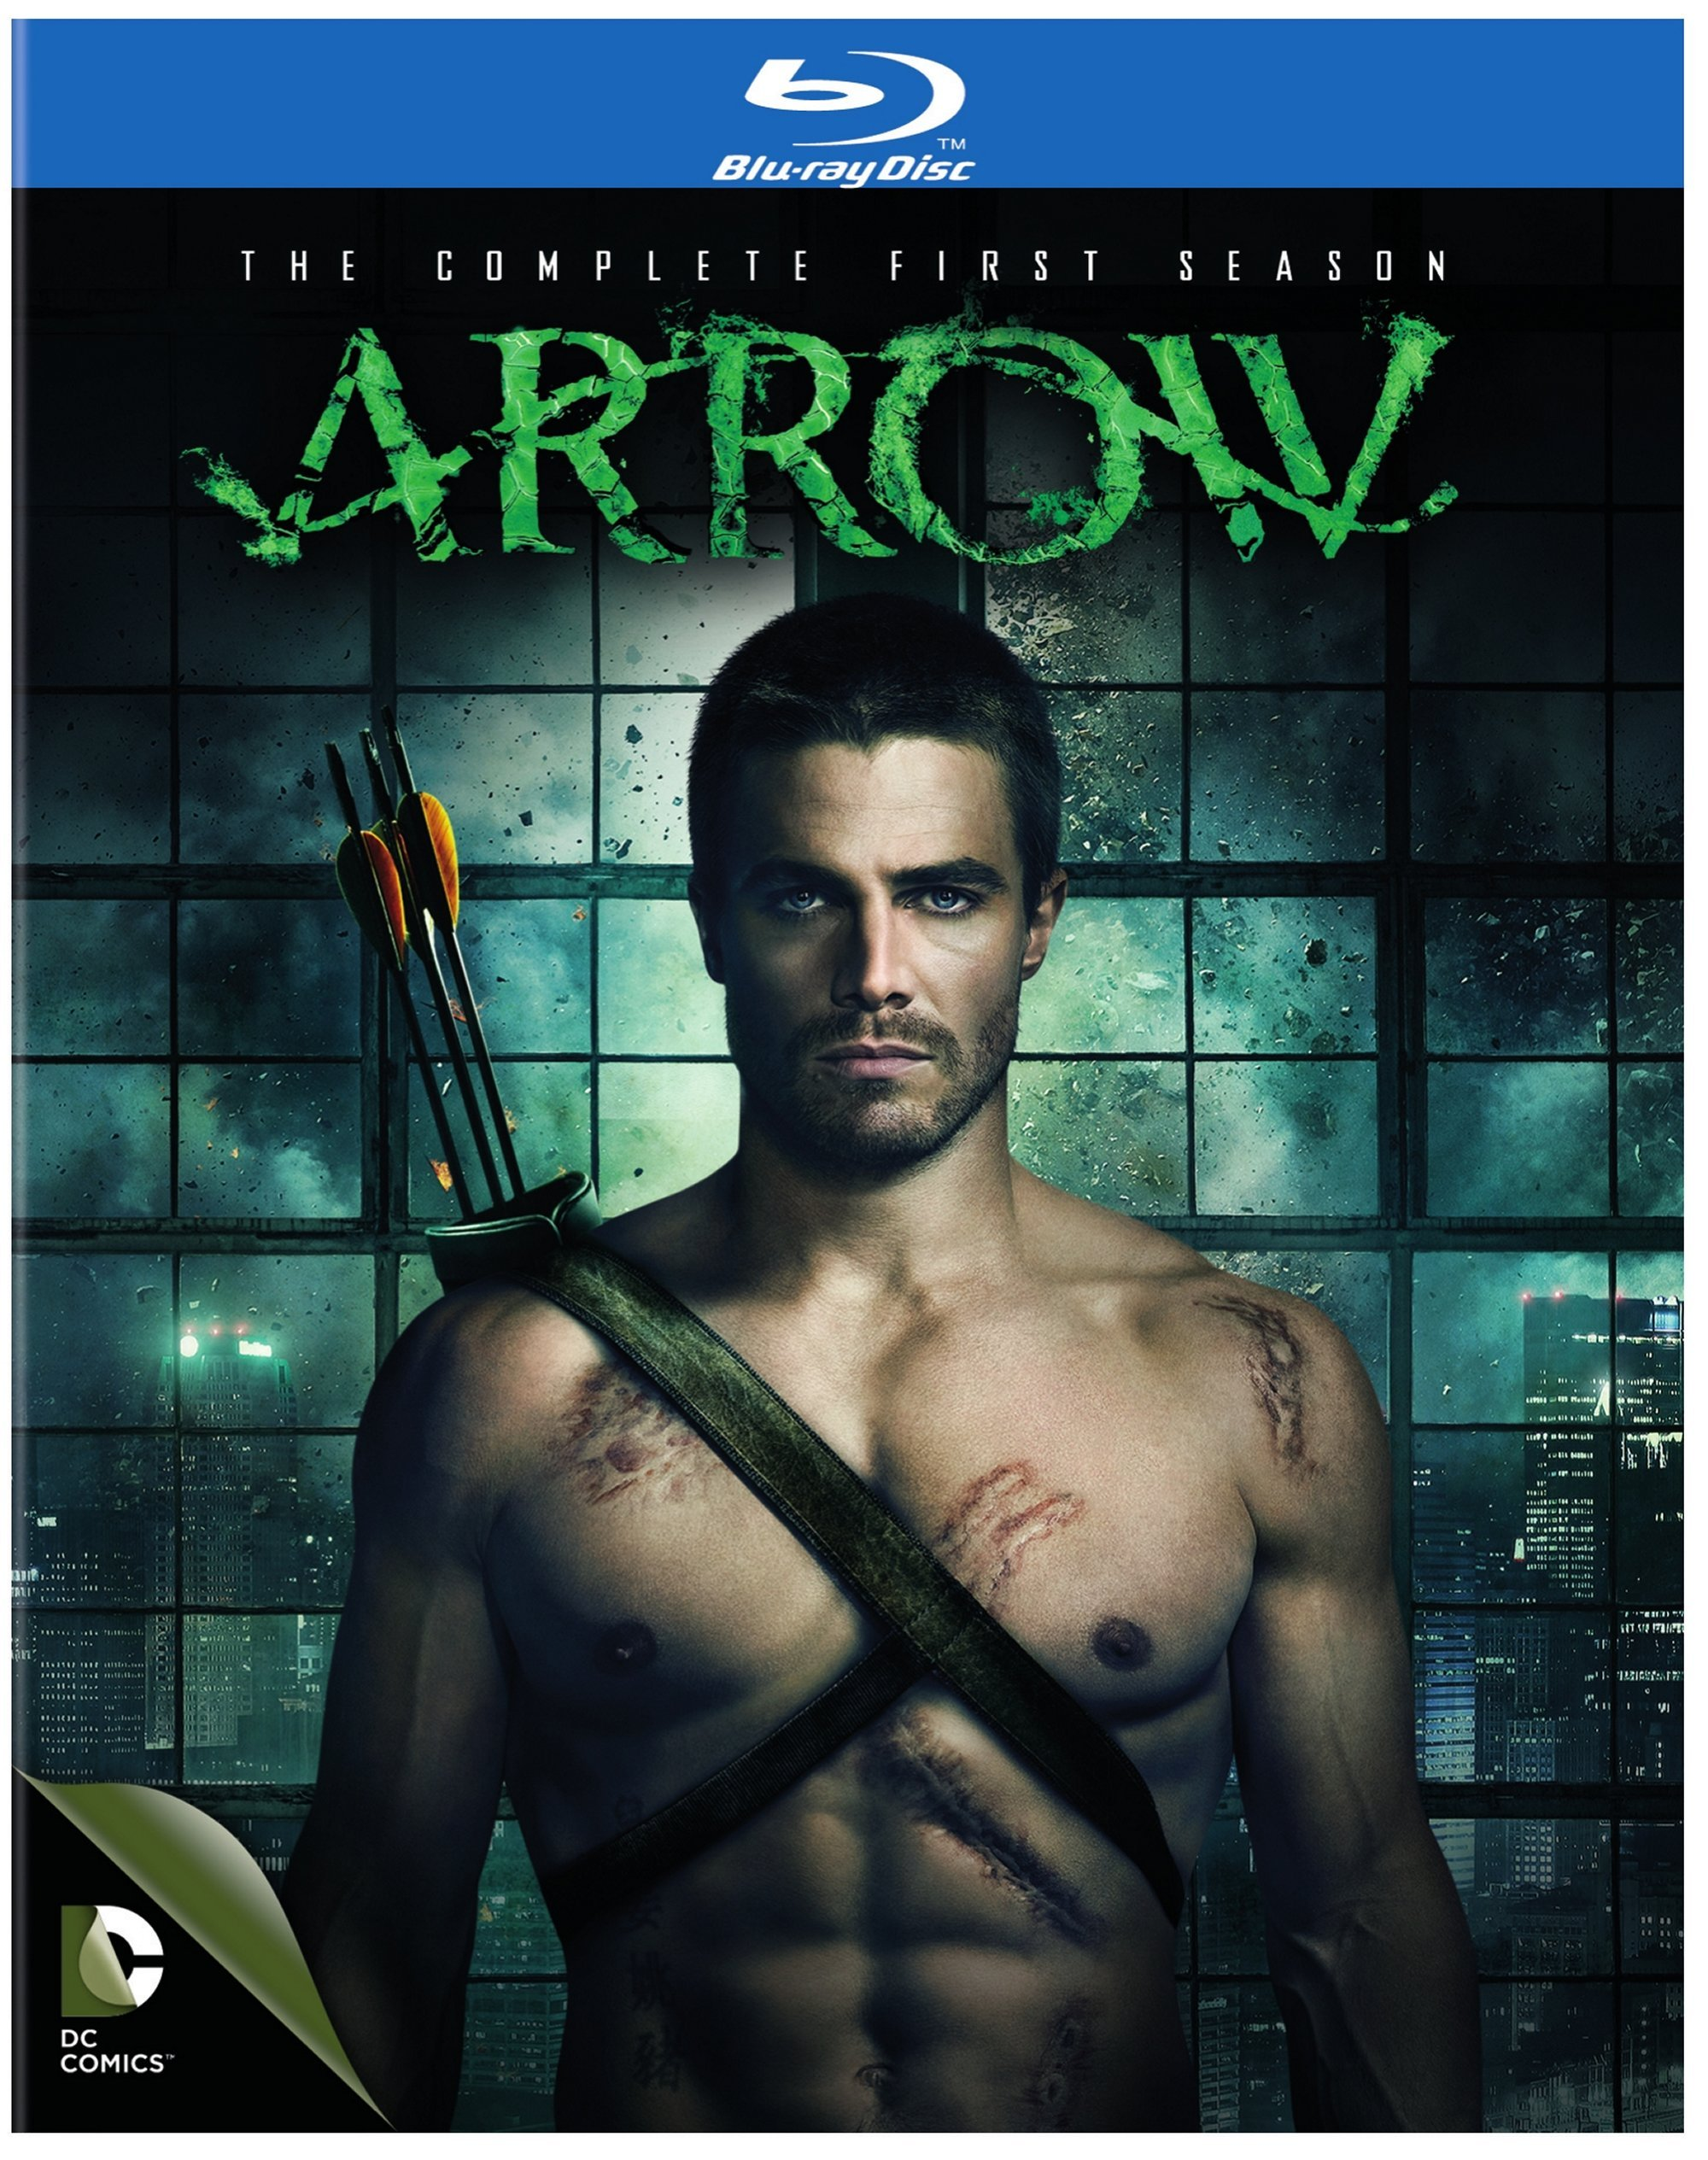 Blu-ray : Arrow: The Complete First Season (DC) (Boxed Set, Slipsleeve Packaging, 4 Disc)